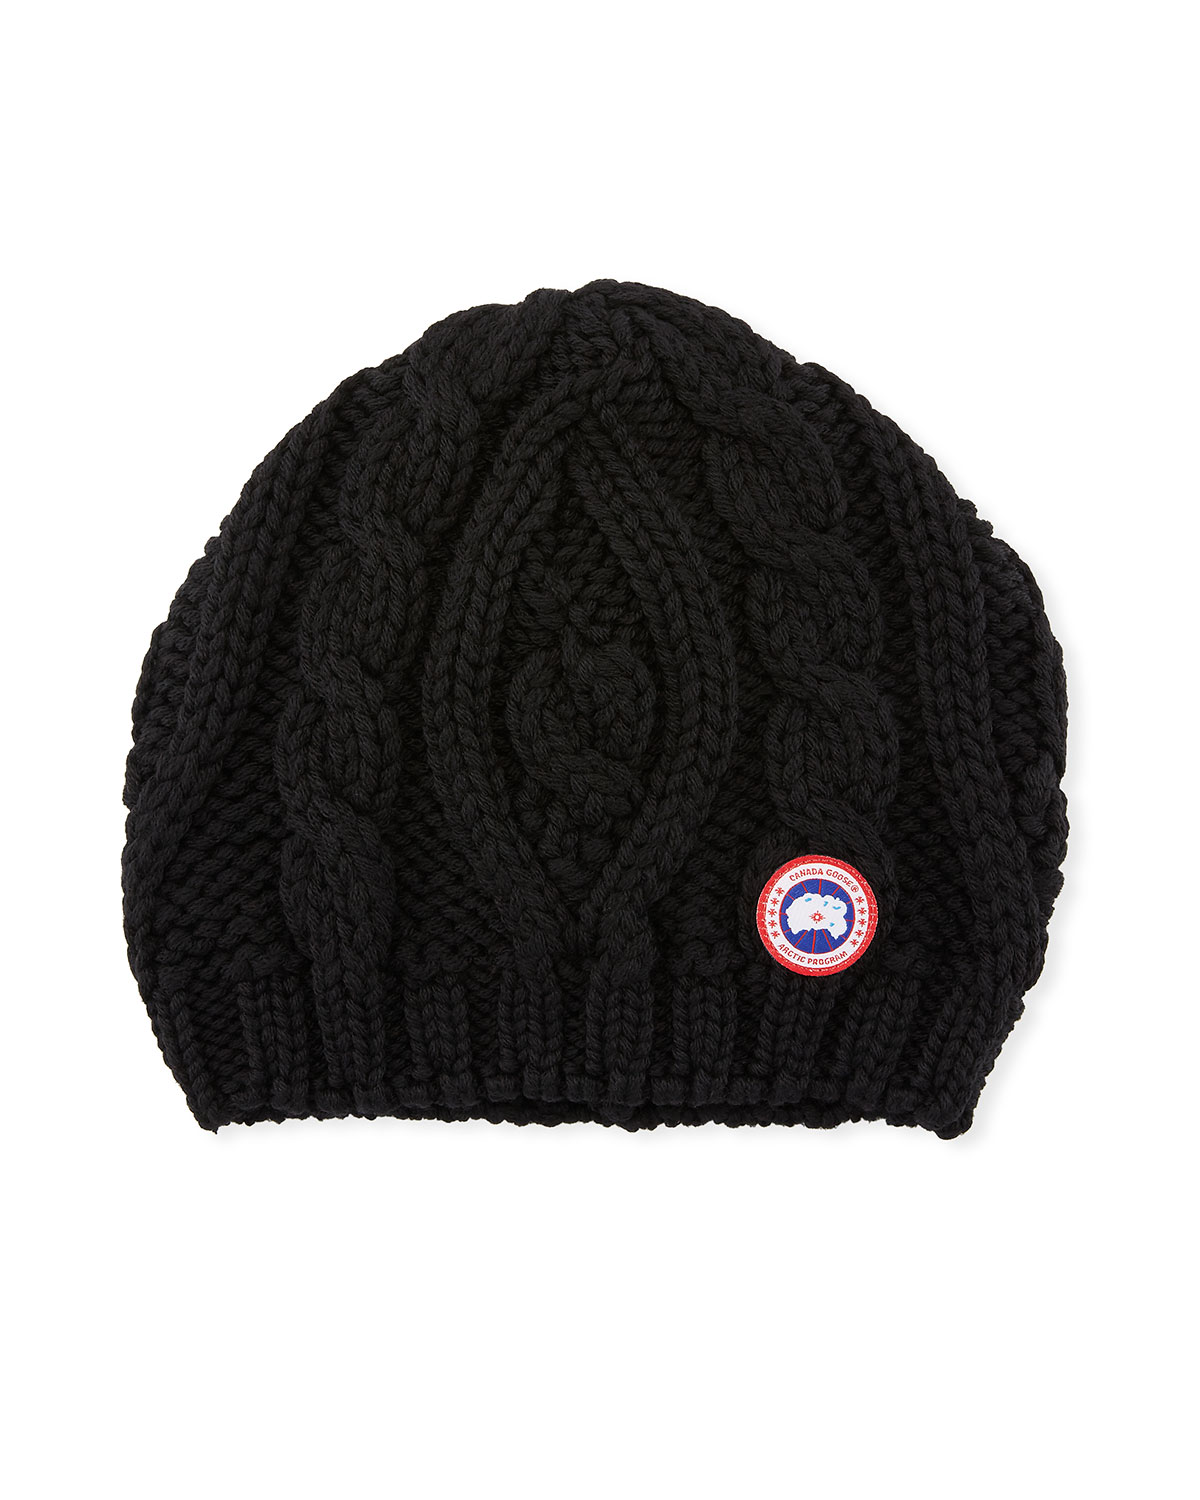 636fbd012a8 Canada Goose Ladies  Chunky Cable-Knit Beanie Hat